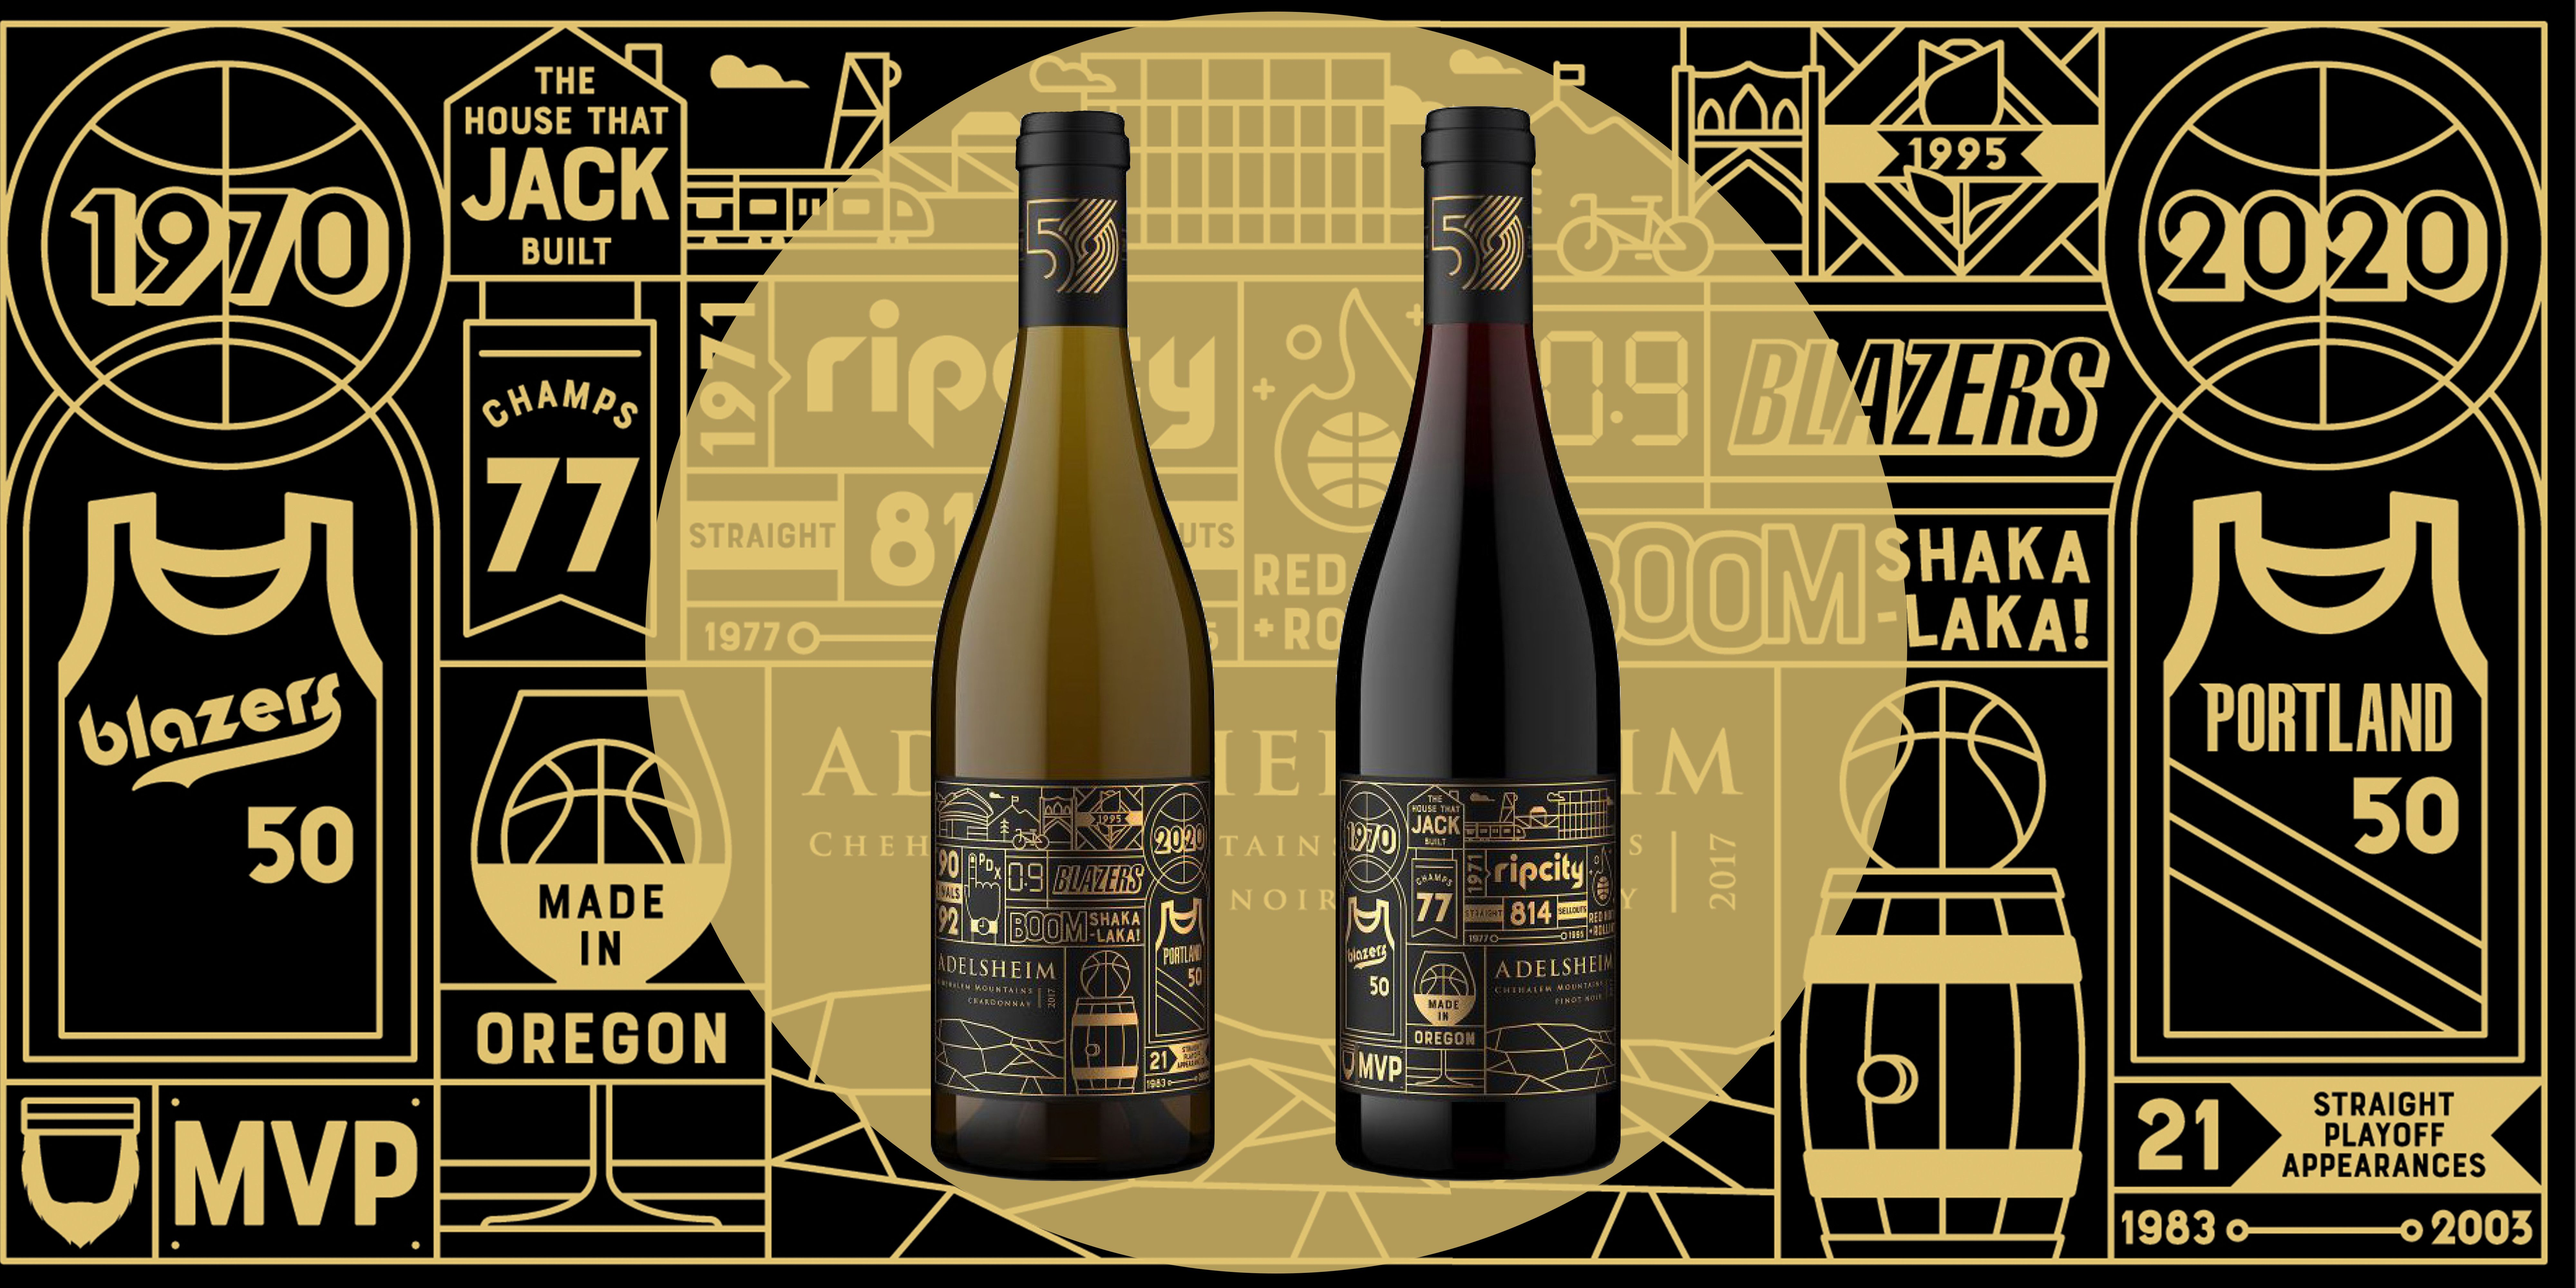 The Portland Trail Blazers Just Got Their Own Wine to Celebrate 50 Years of Basketball